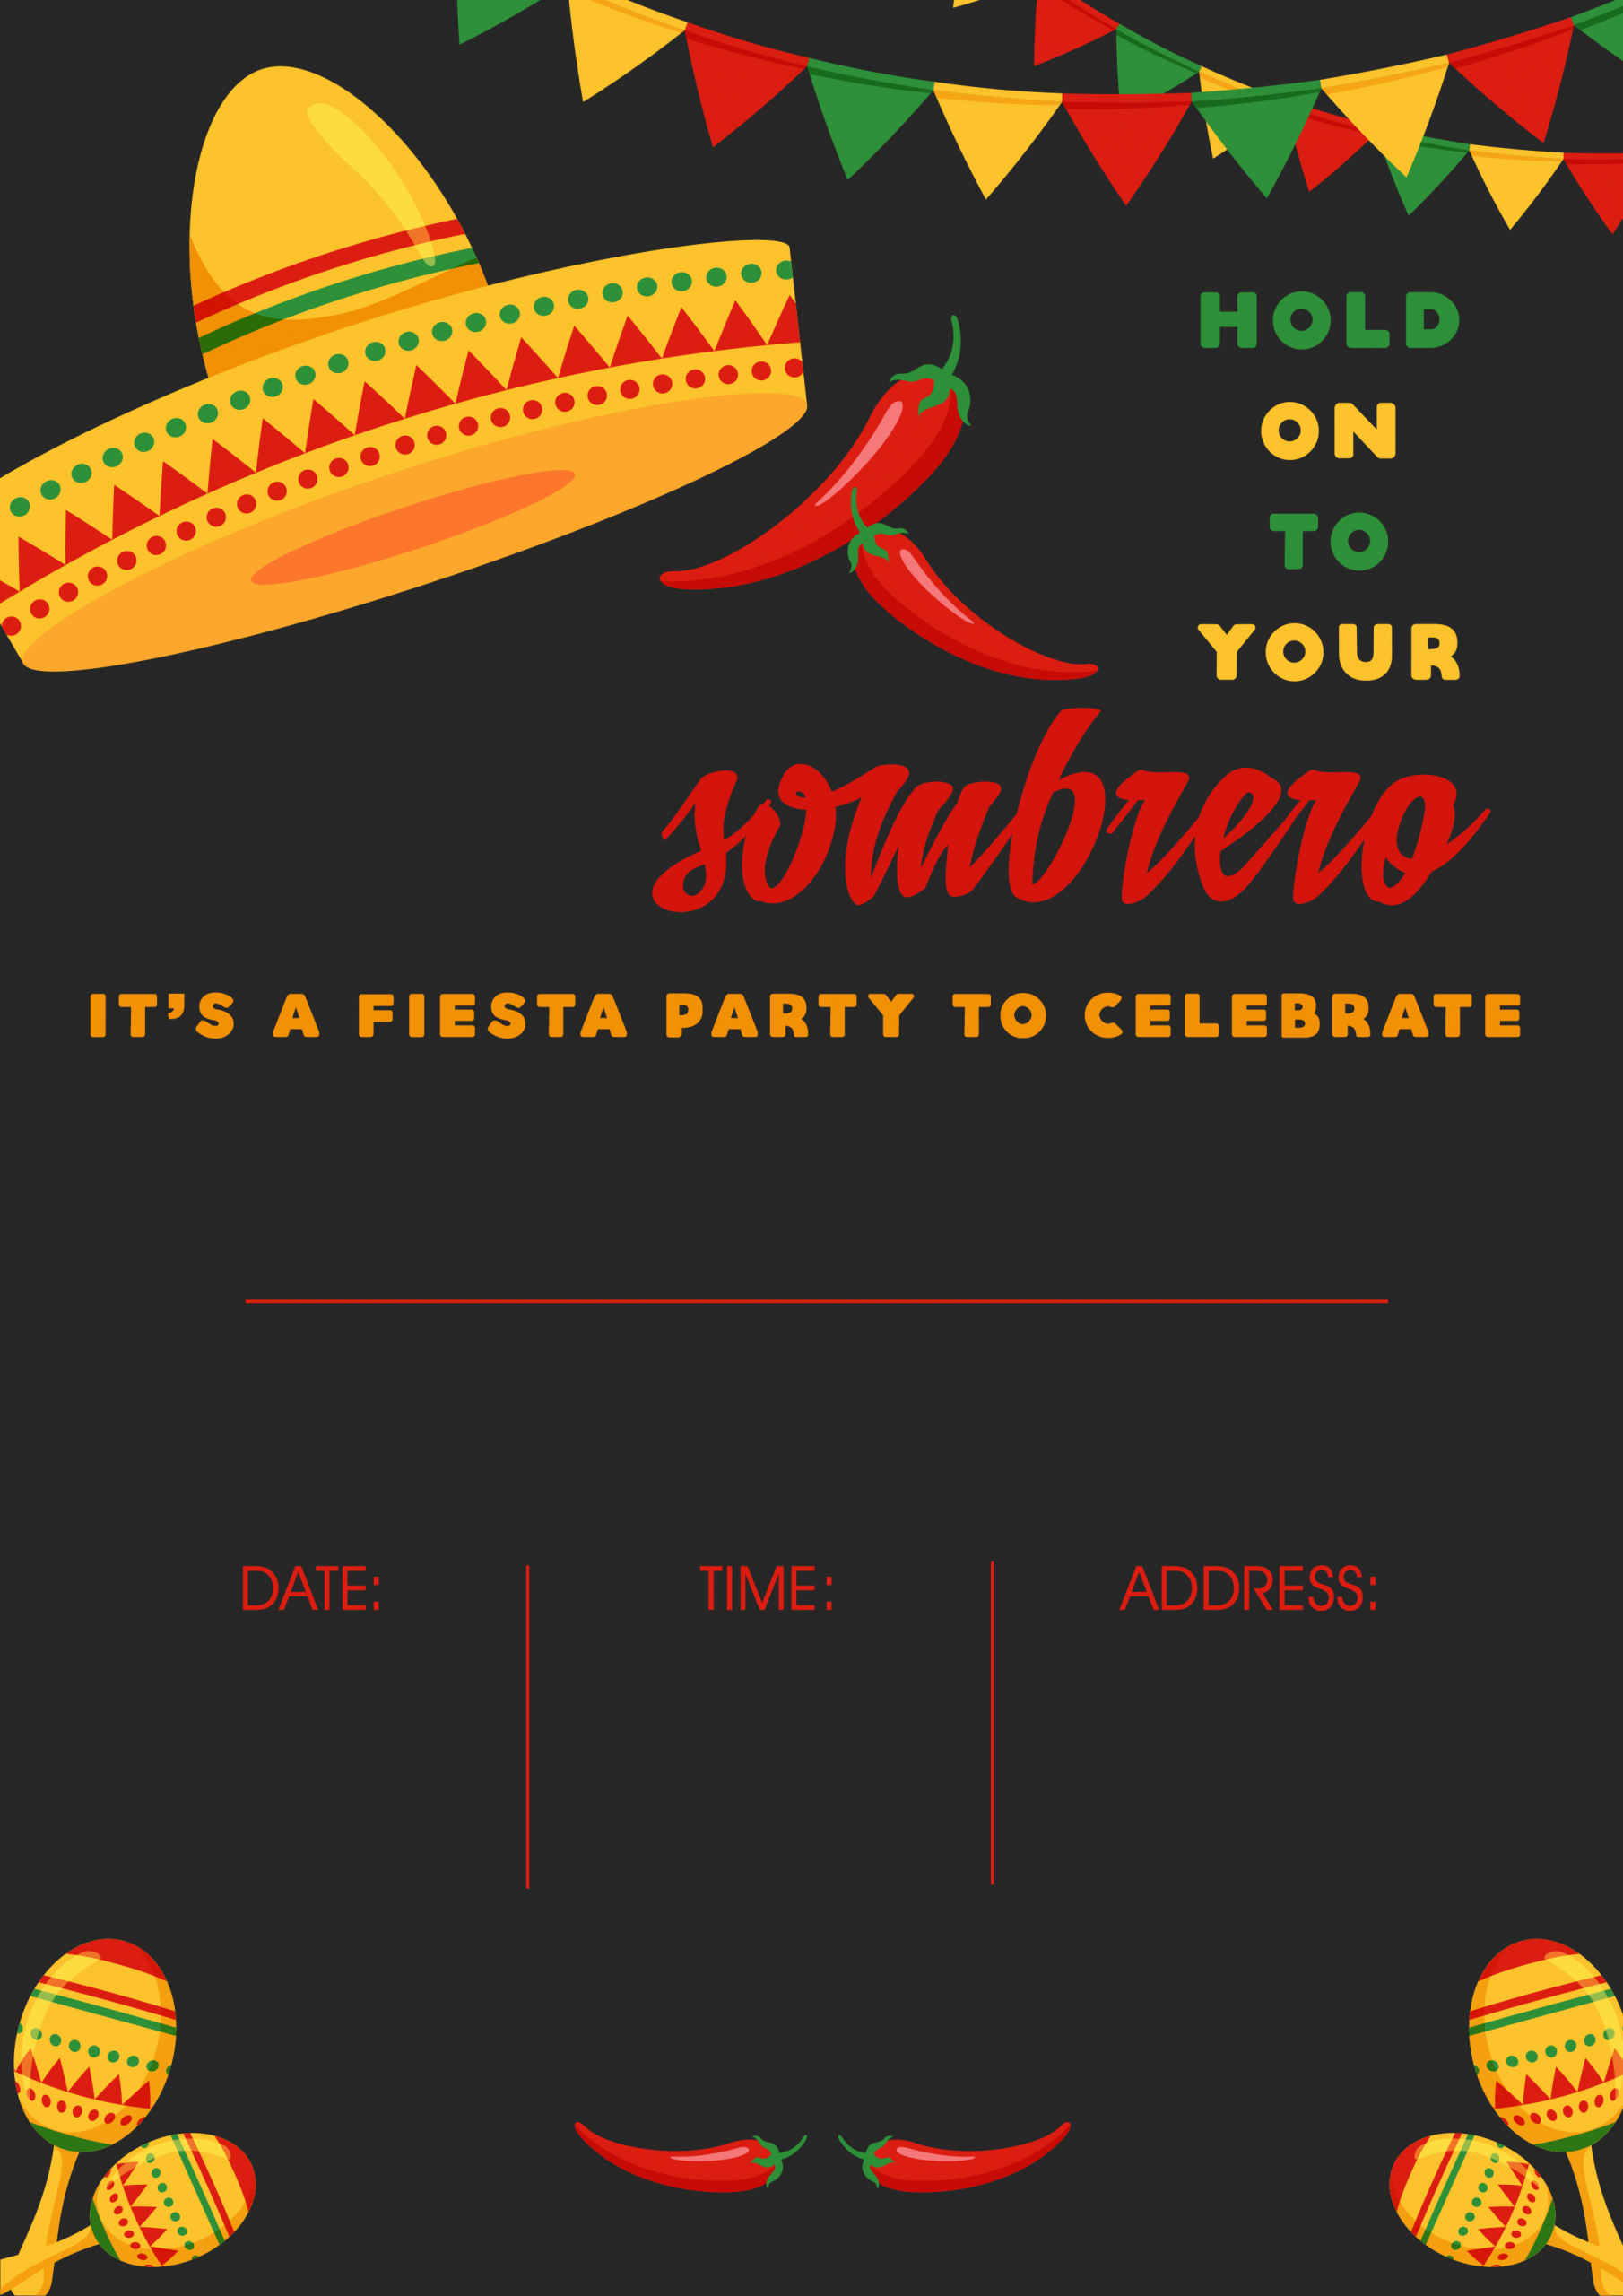 Mexican Party Invite Template Beautiful Mexican Party In the Spotlight themed Party Ideas All